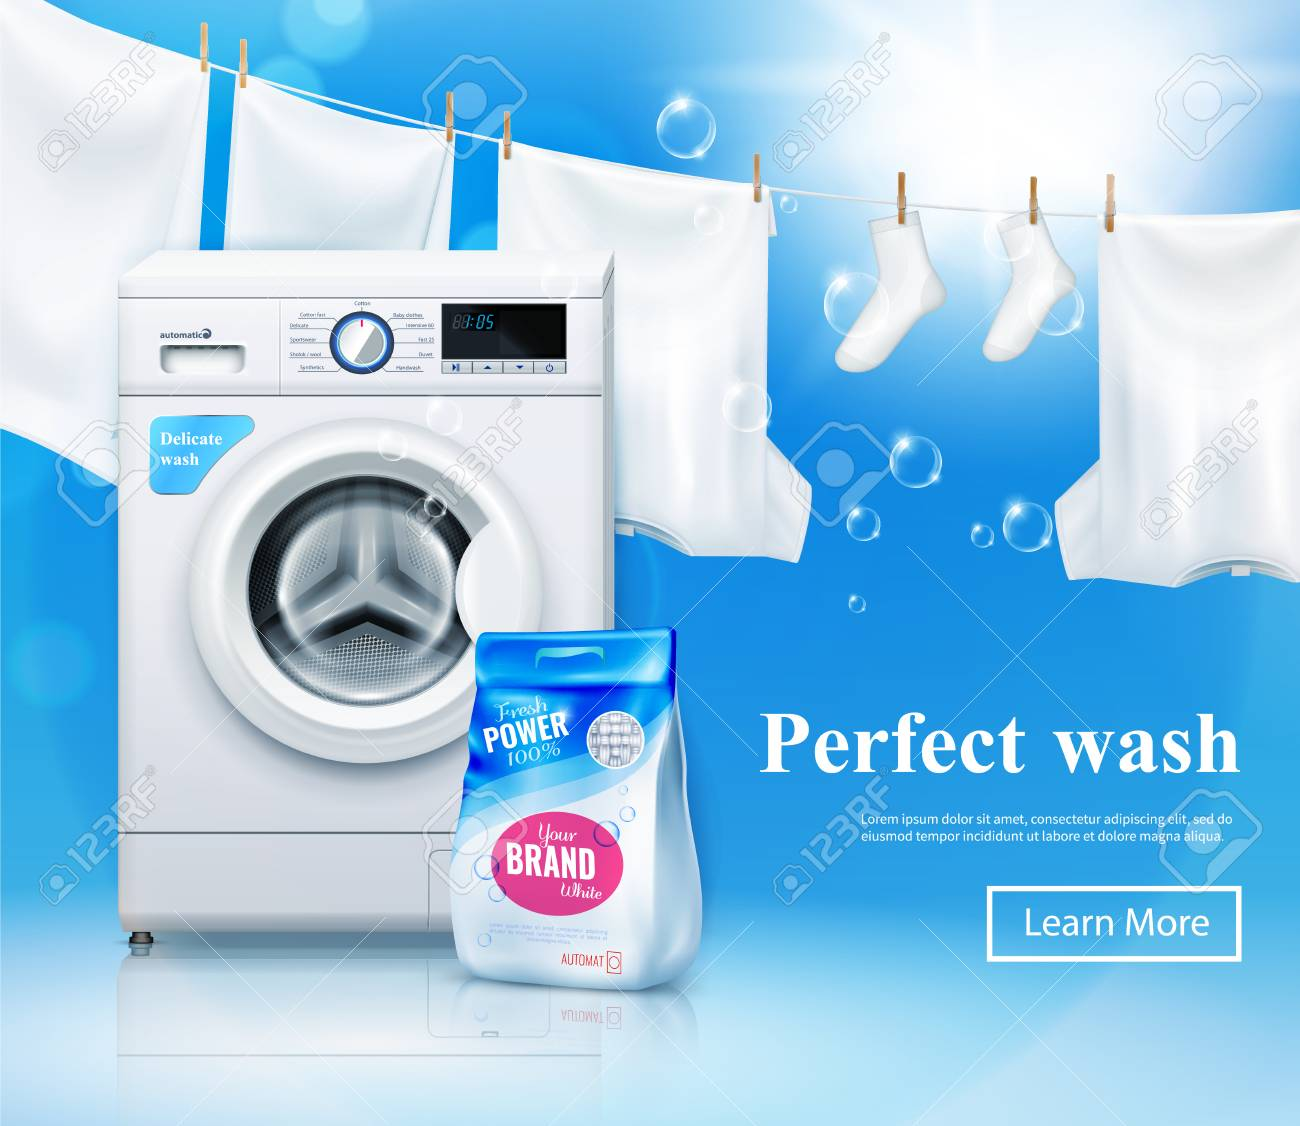 Laundry Detergent Advertising Background